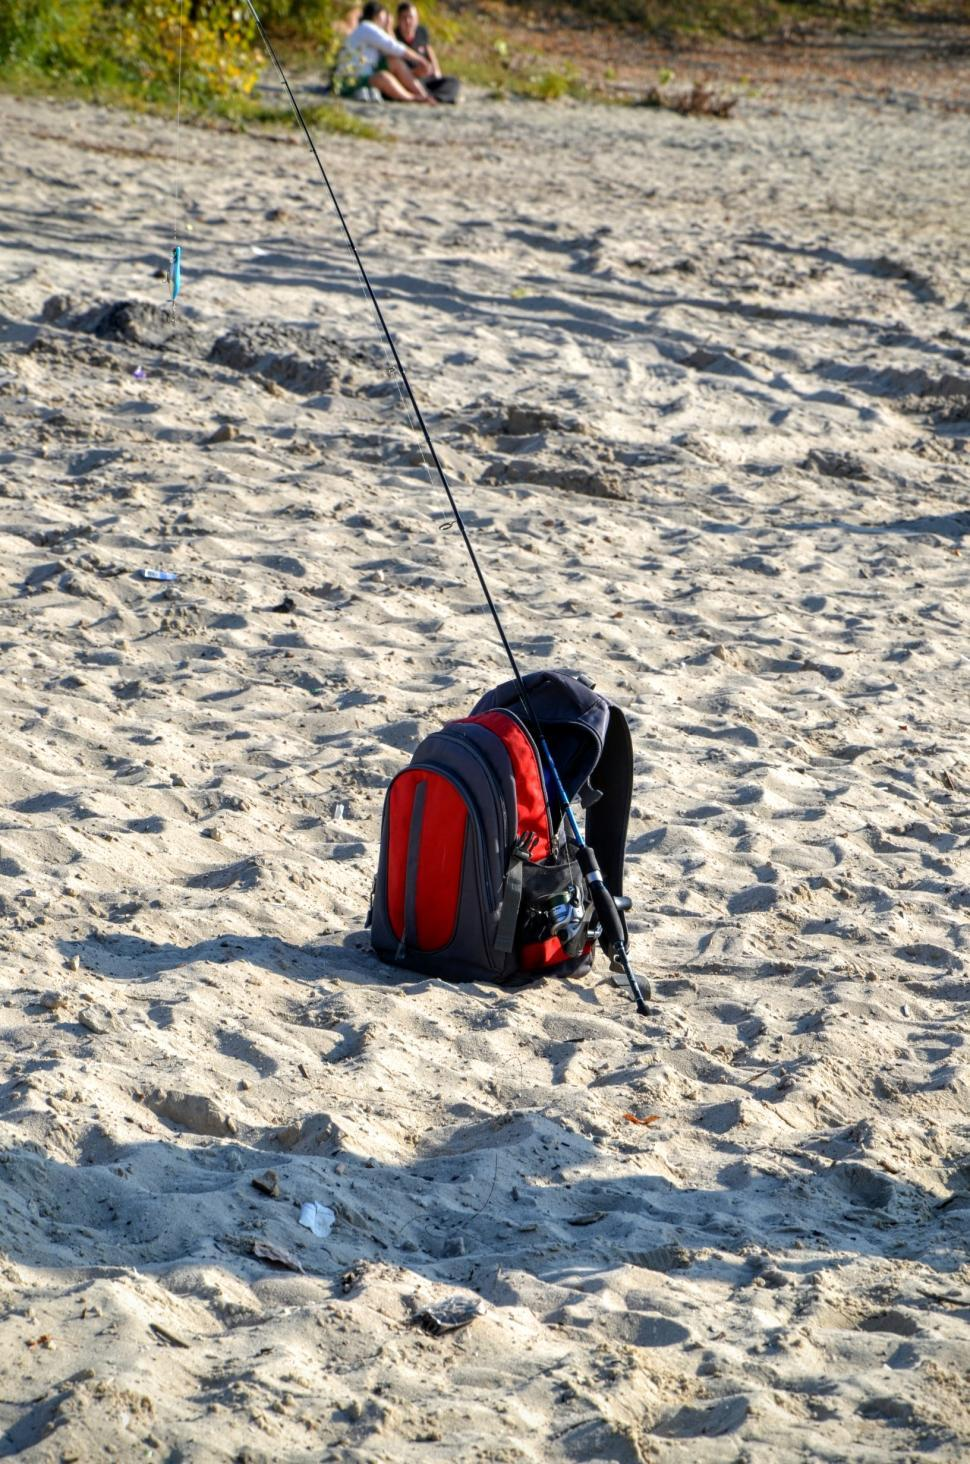 Download Free Stock HD Photo of Fisherman's bag with spinning rod lies on the sand on the shore of the river  Online